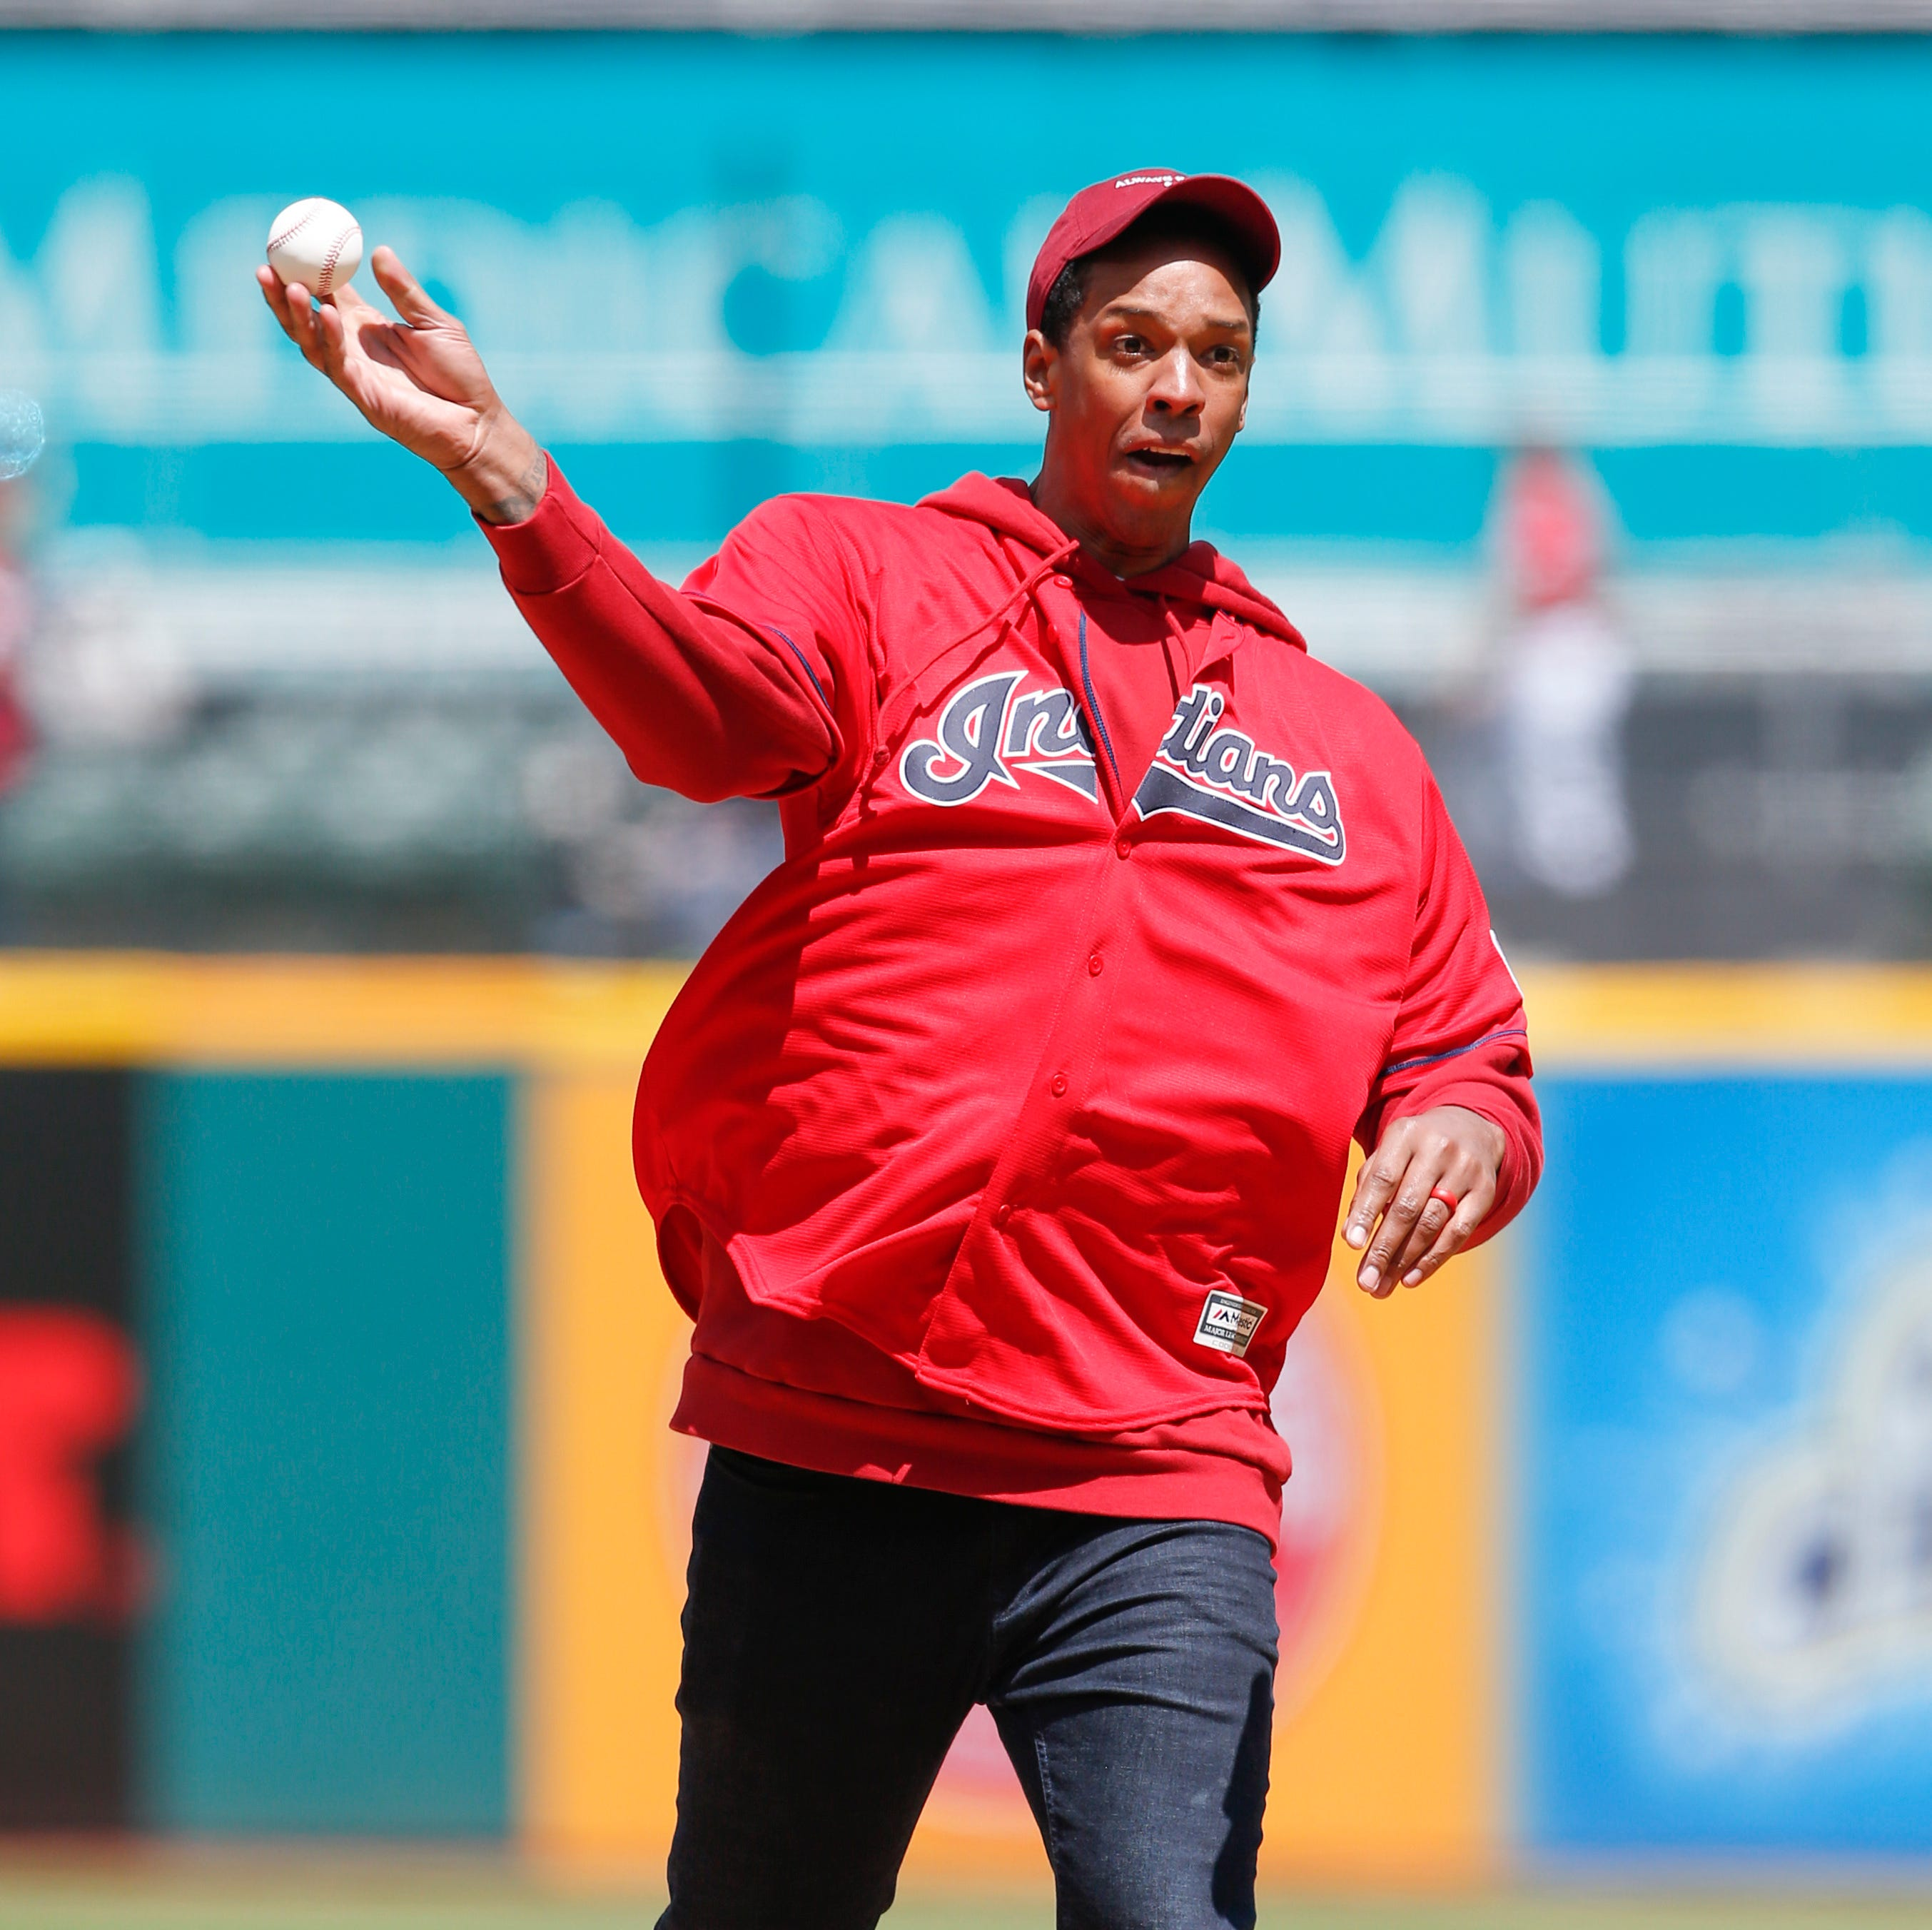 Channing Frye overcomes 'elbow surgery', 'dust devil', 'greased' ball to throw first pitch